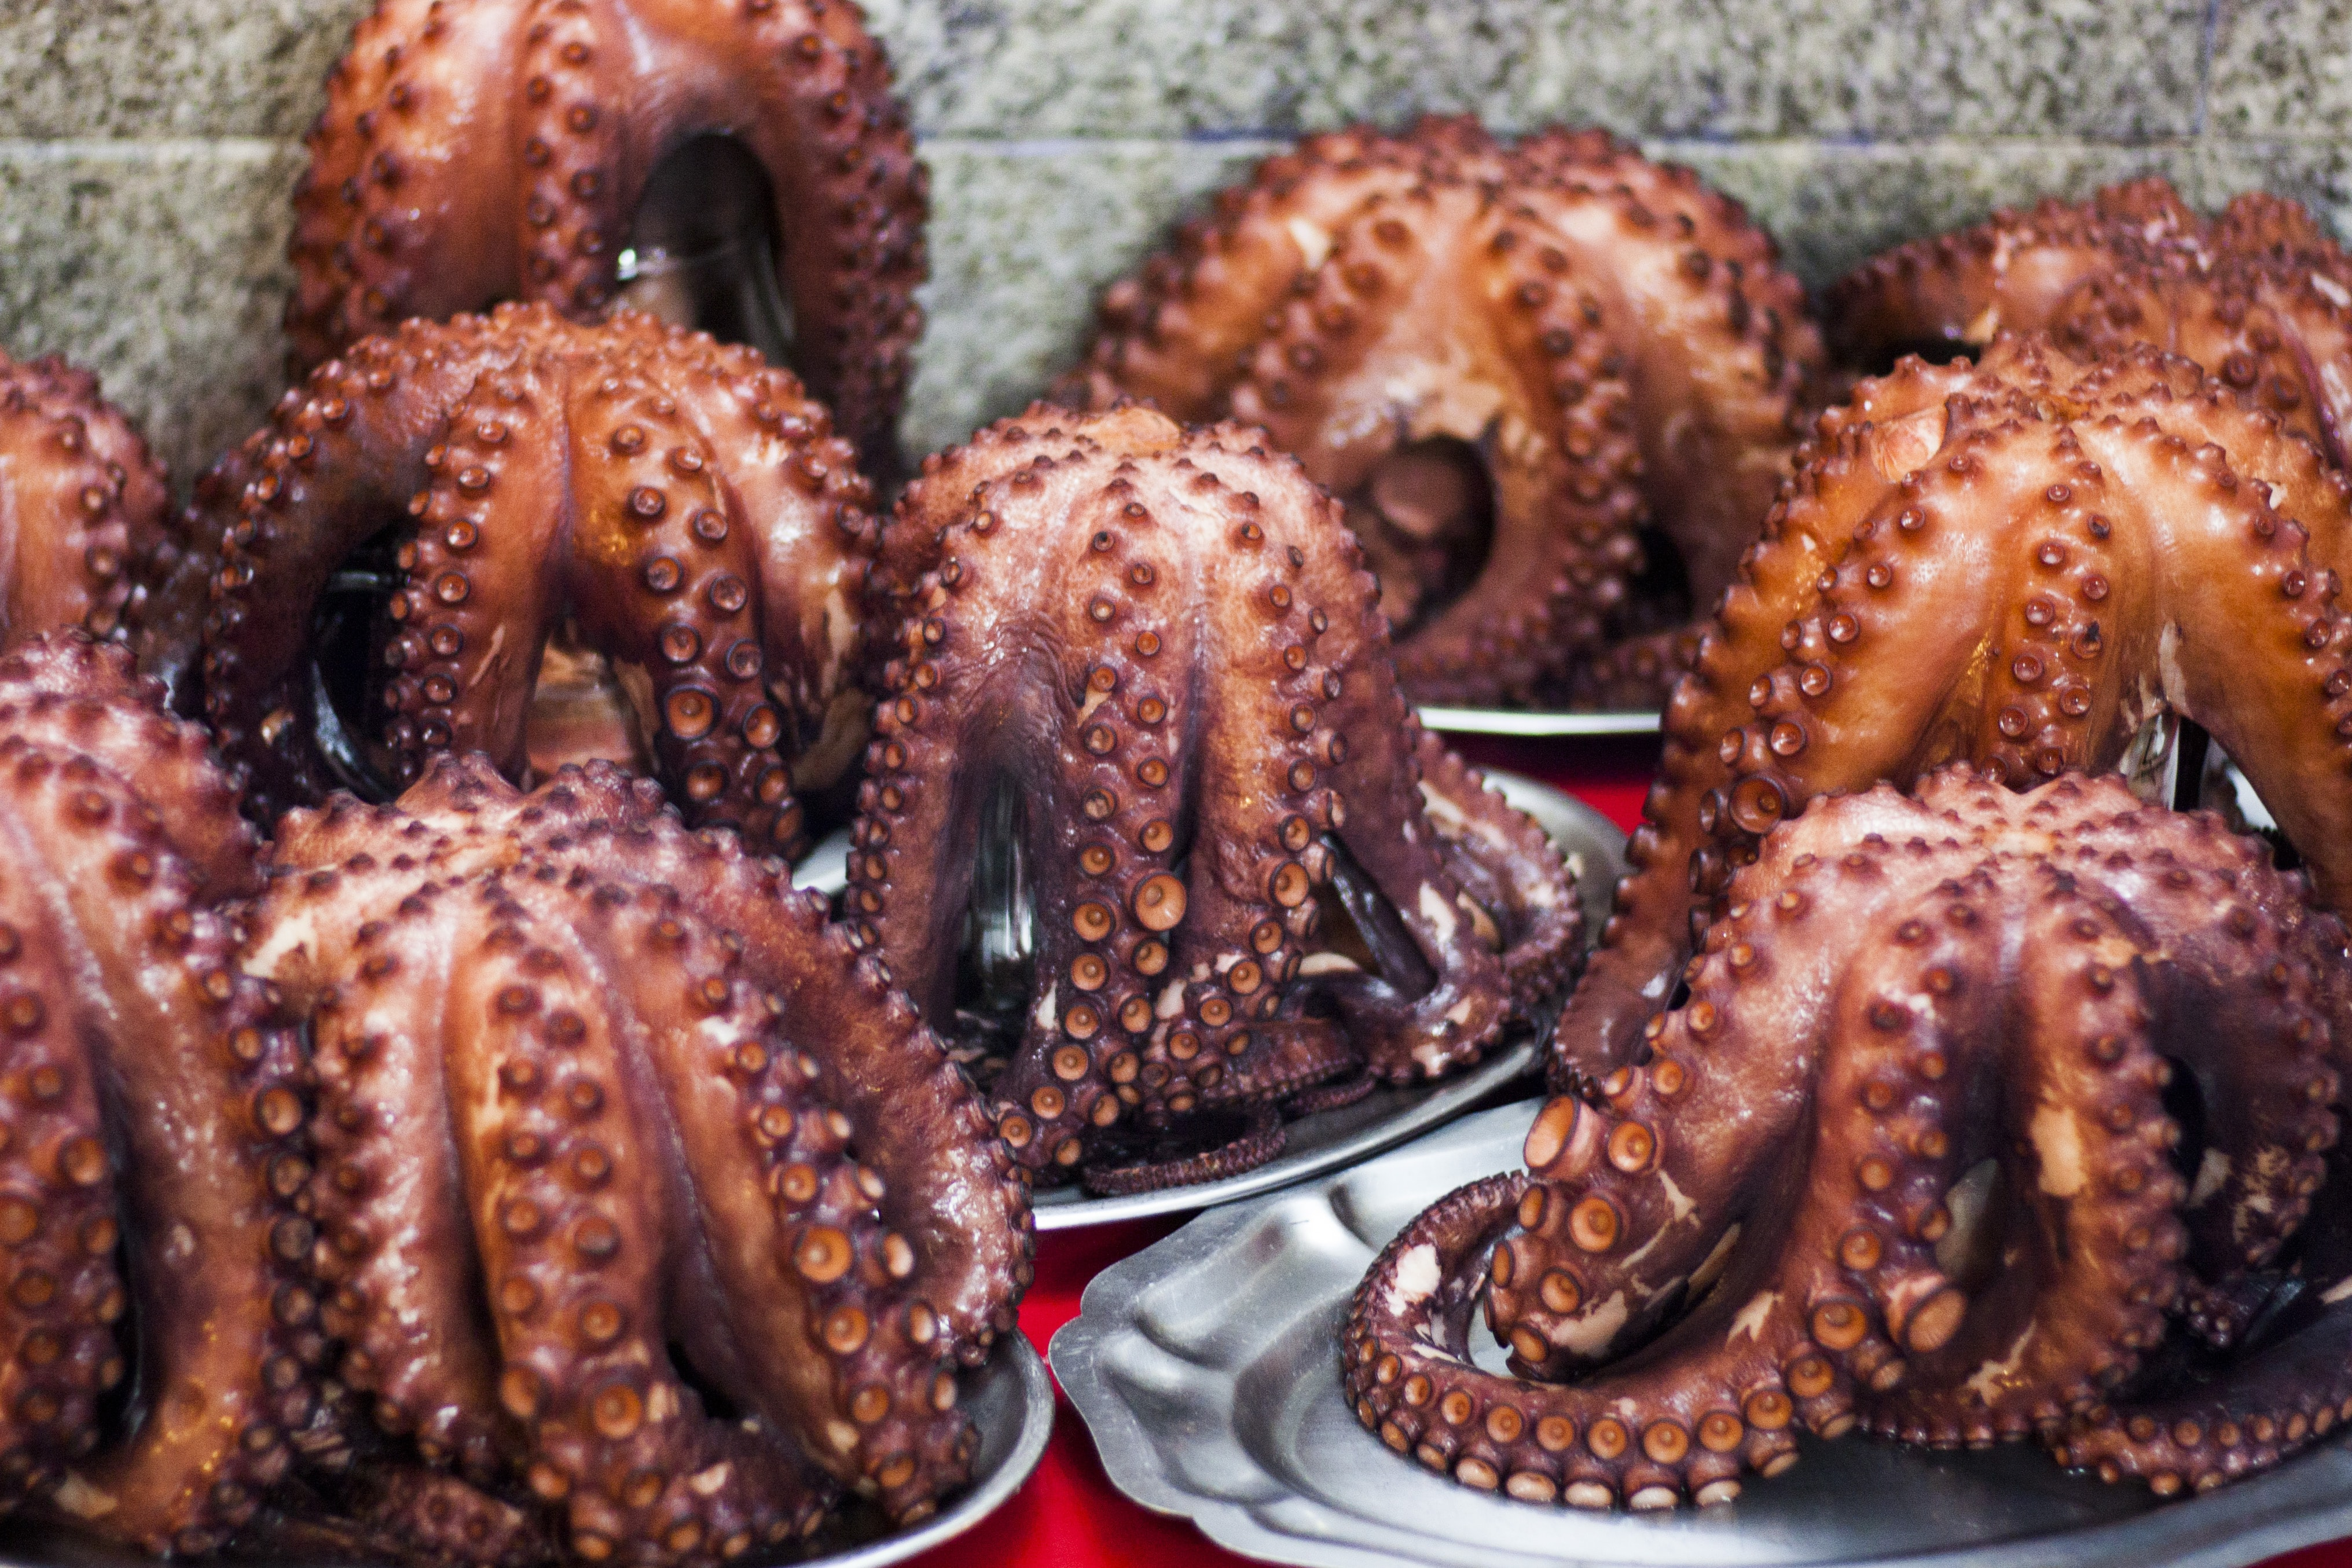 grilled octopus dishes